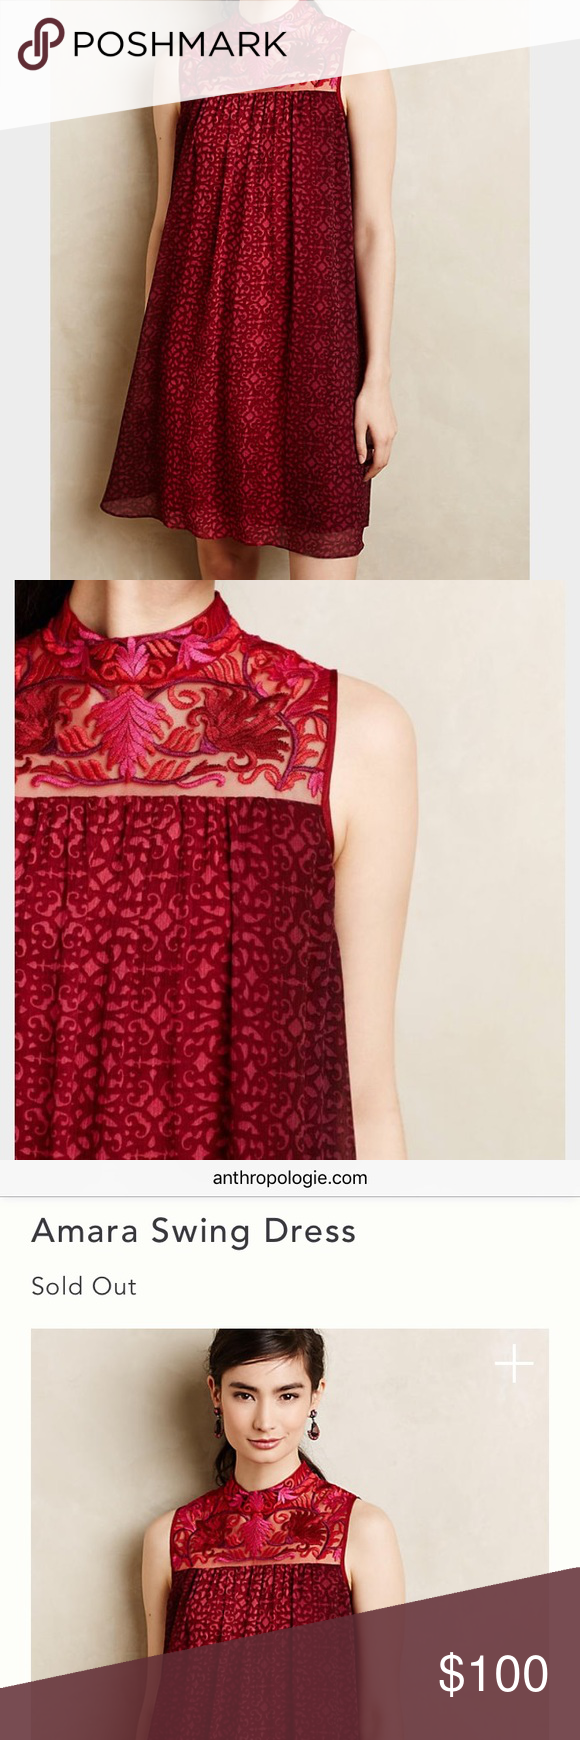 7ab9e07f095b3 NWT Amara swing dress NWT Anthropologies Amara Swing dress! Sold out  everywhere online! Size 6 never worn! So gorgeous and perfect for any  occasion!